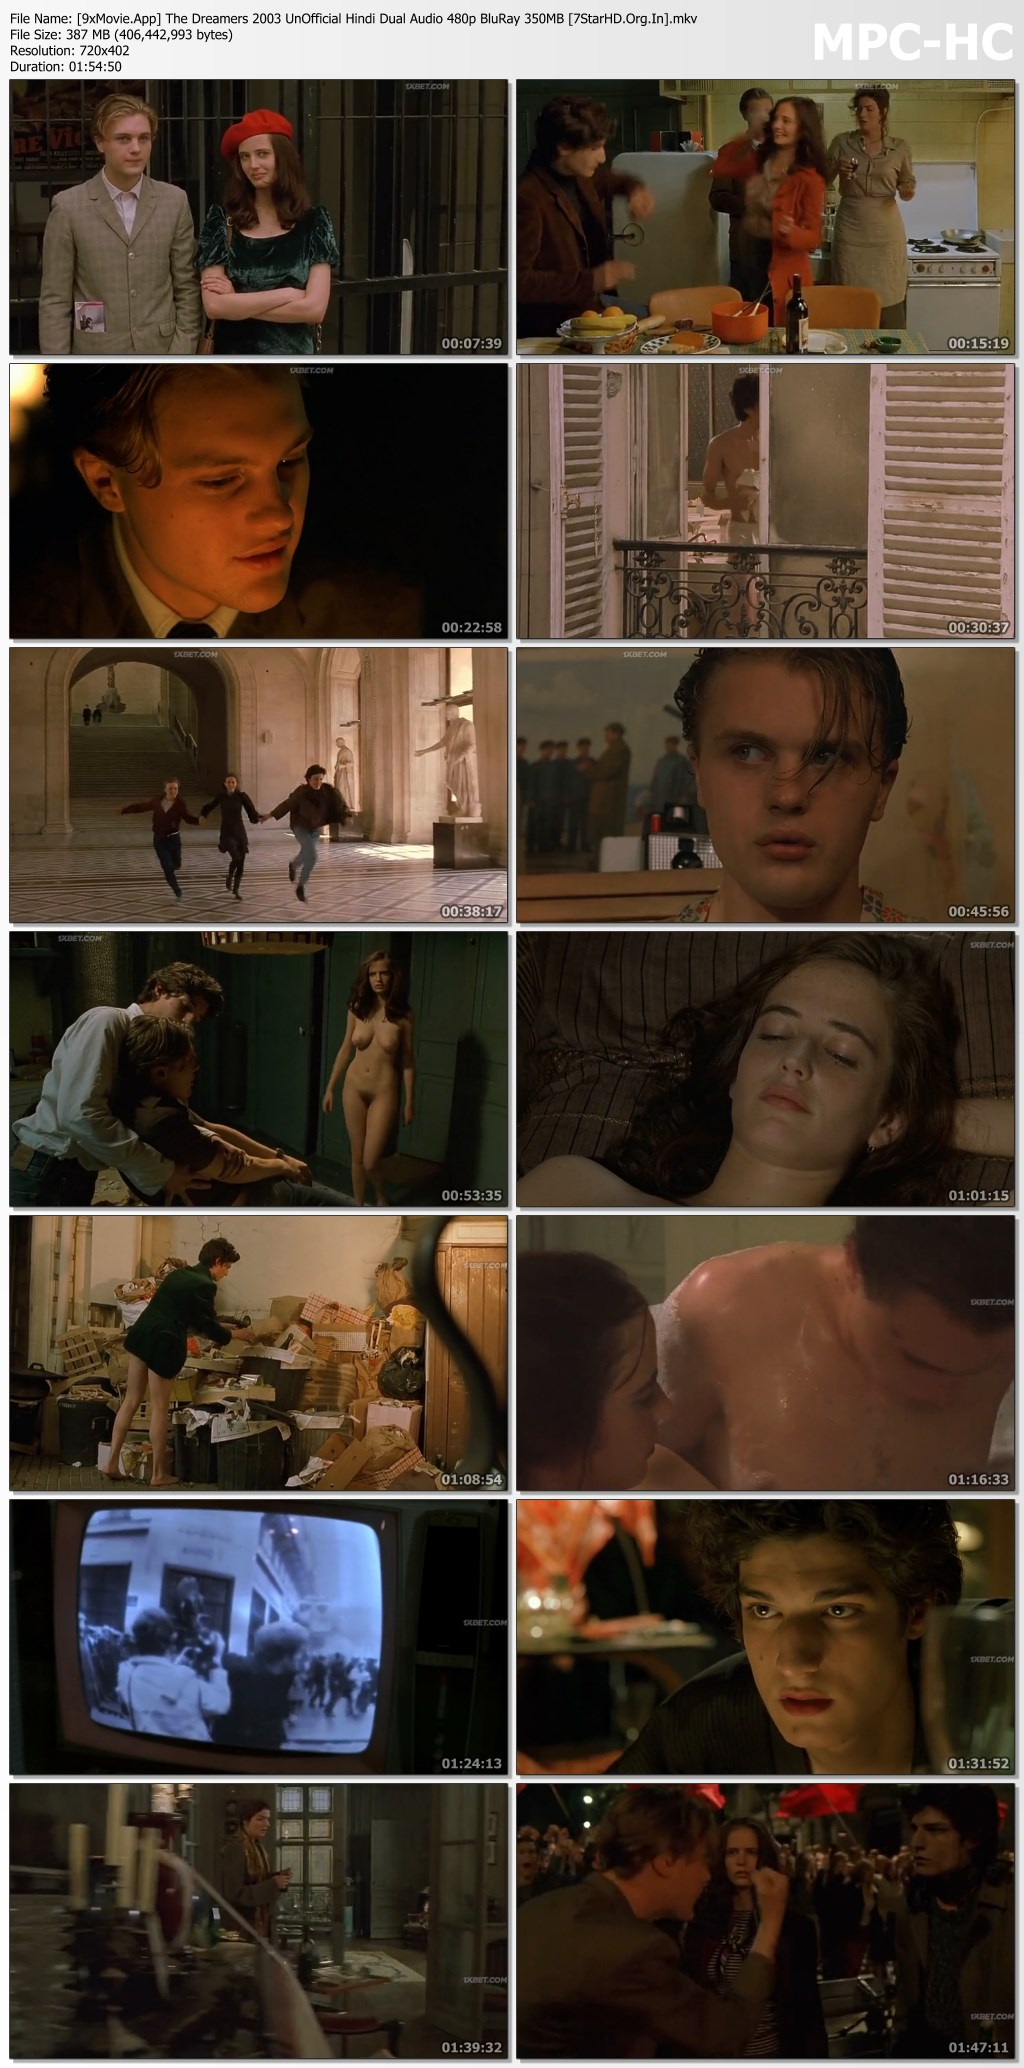 The Dreamers 2003 UnOfficial Hindi Dual Audio 480p BluRay x264 350MB